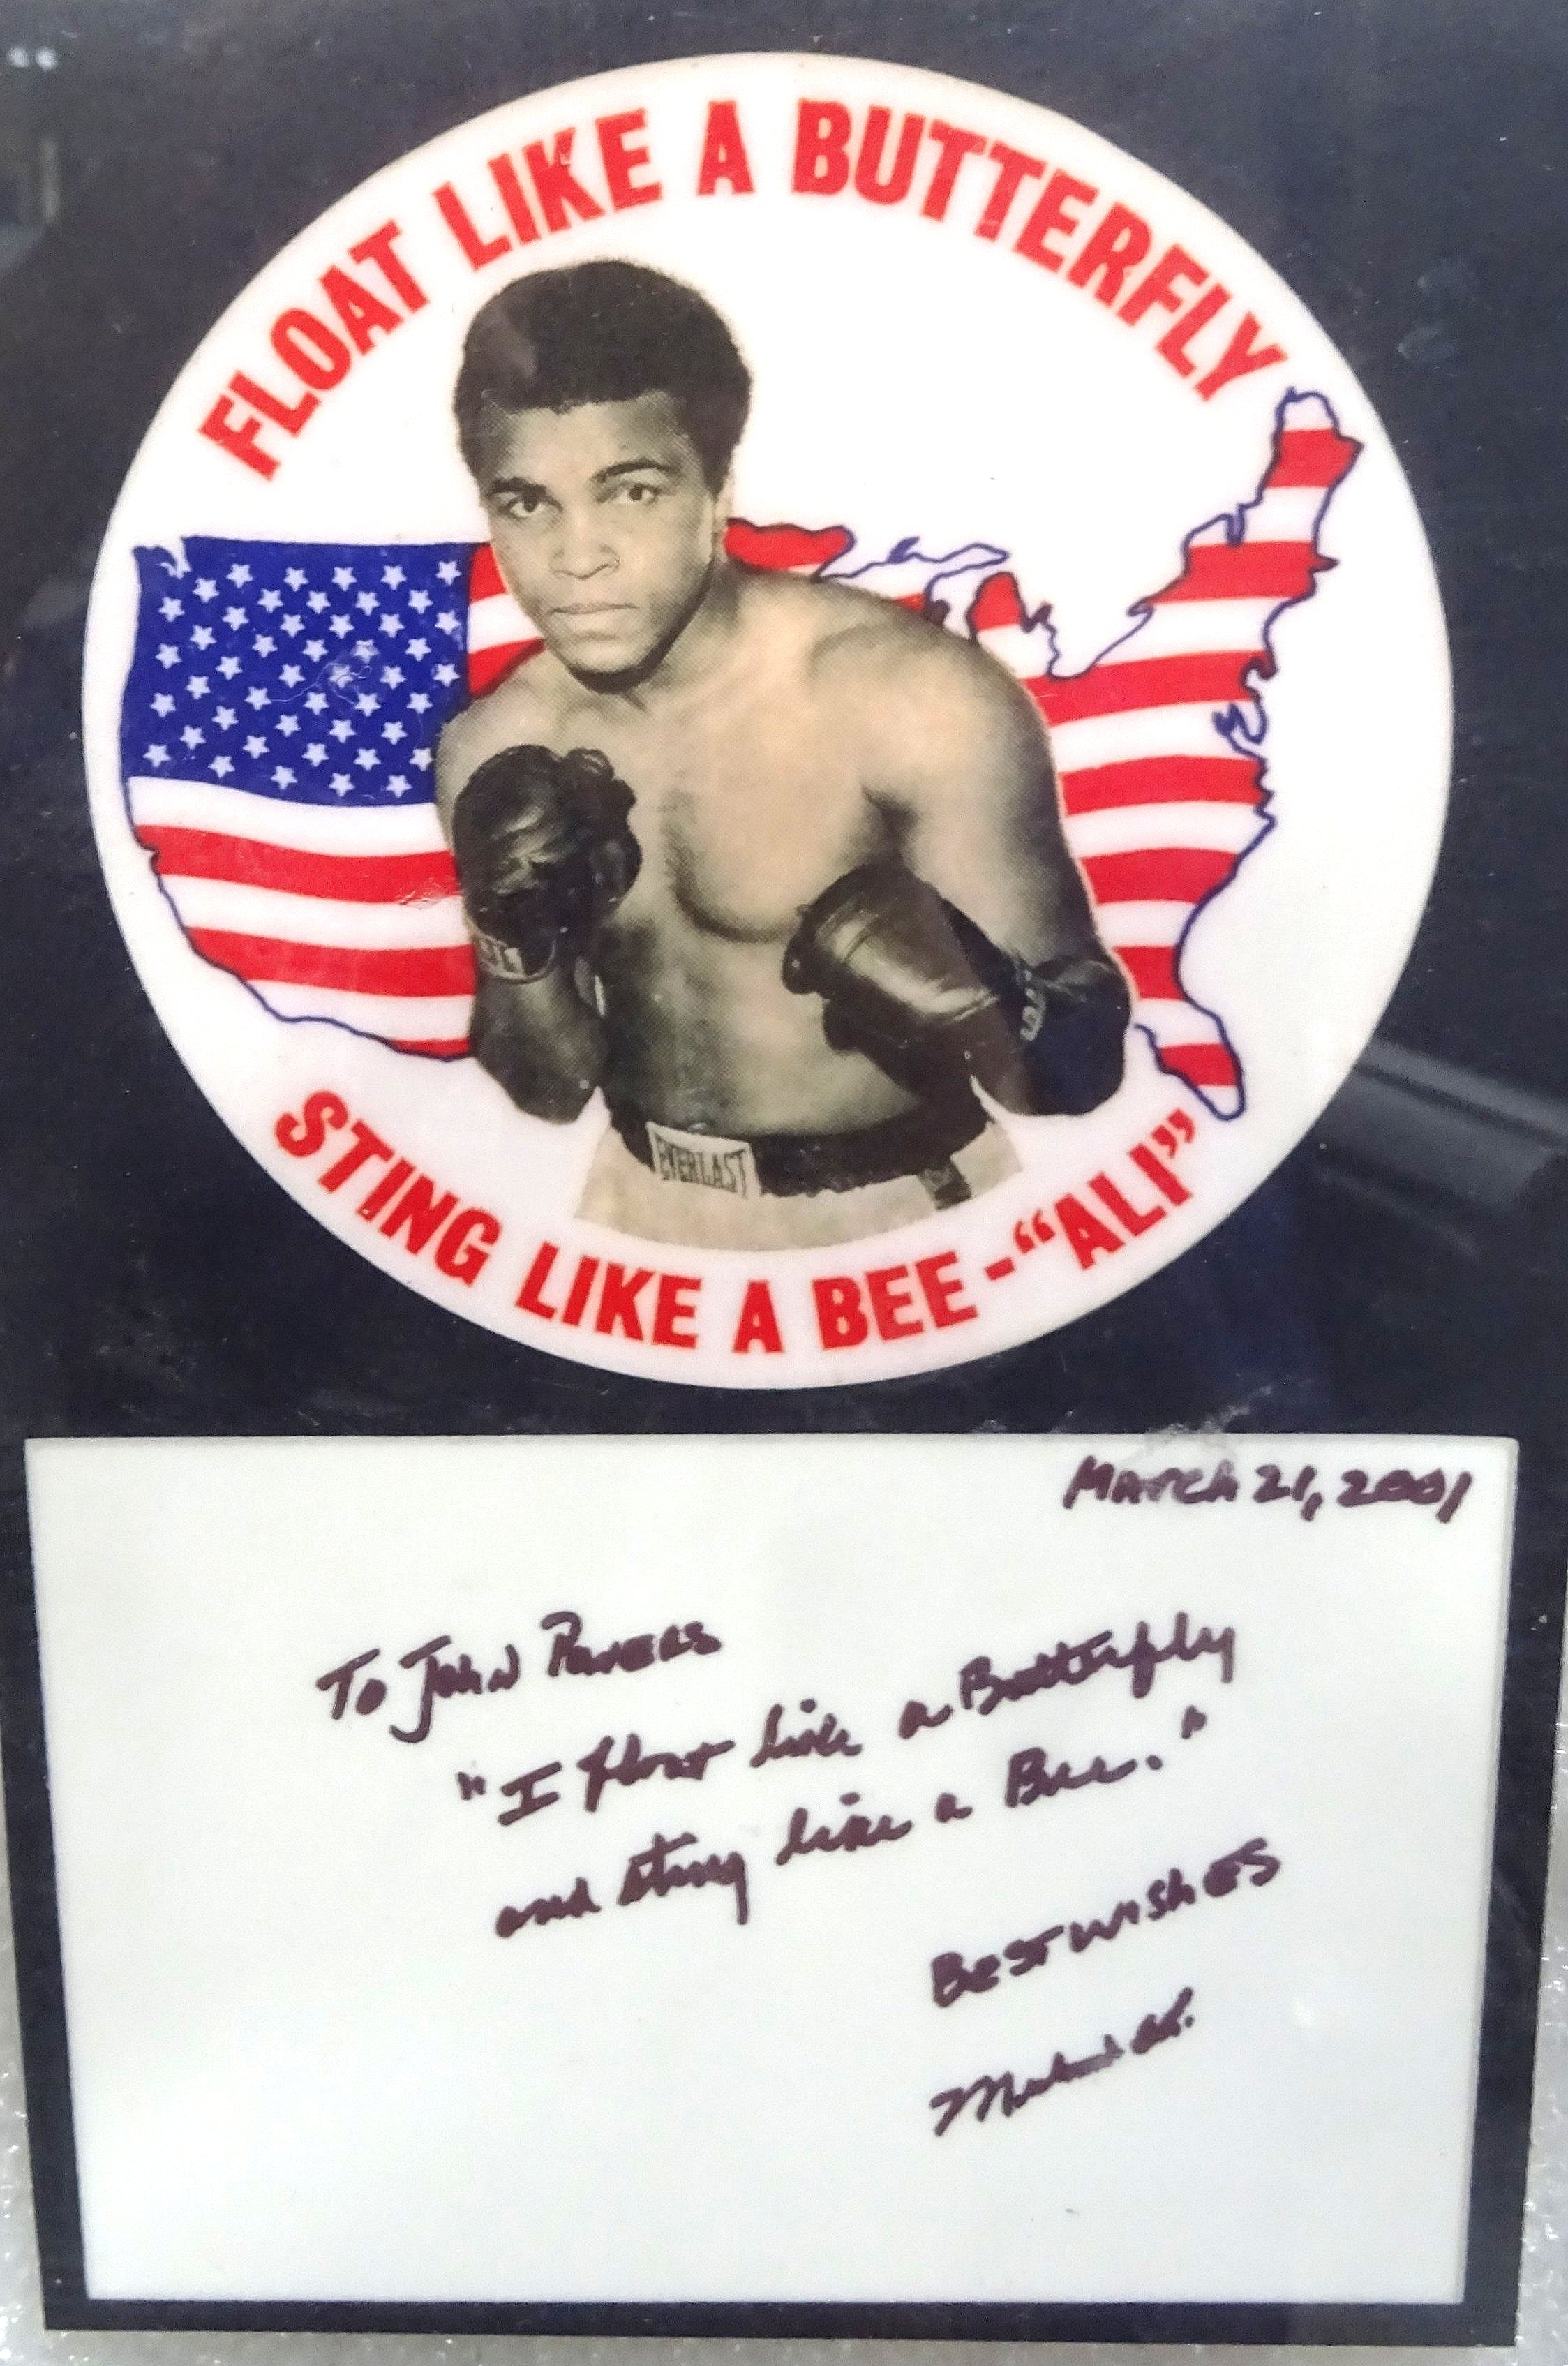 MuhammadAli Note to John Powers Butterfly Display by Orkin Canada, 15-17 April 2016